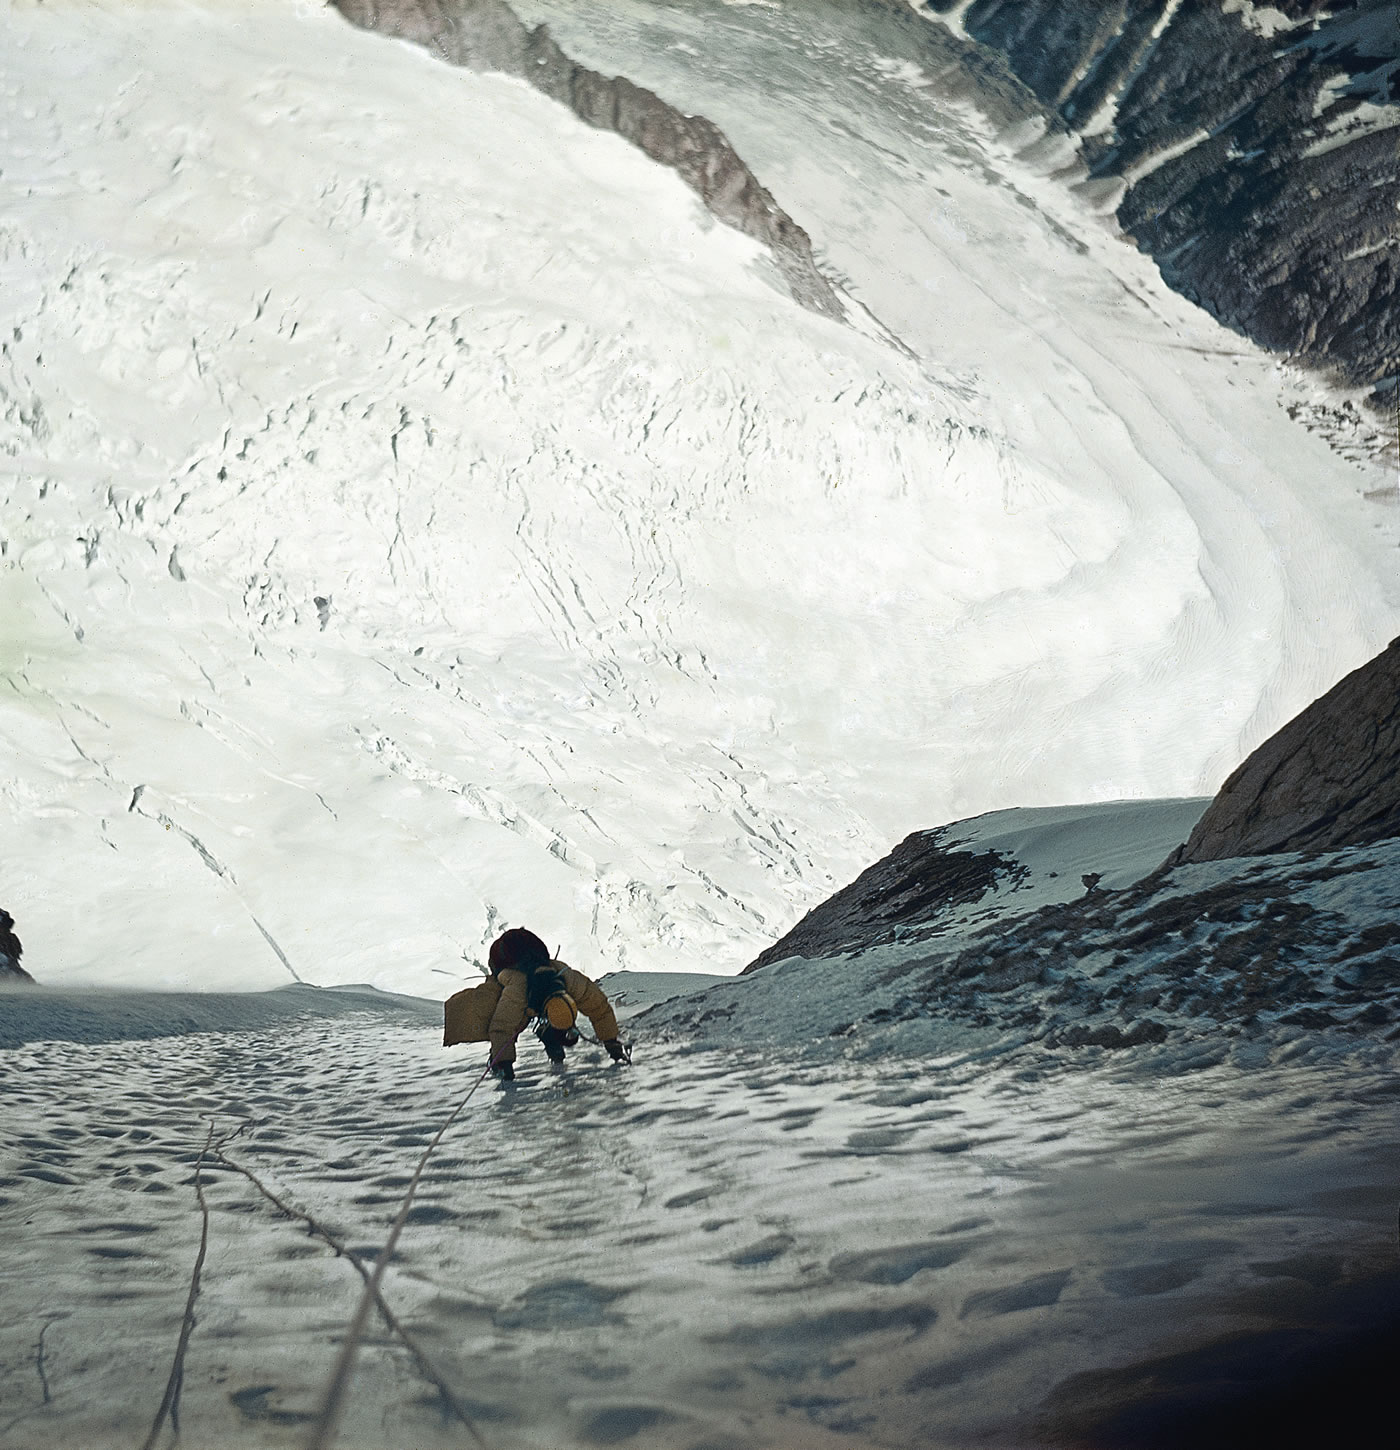 Lado Vidmar on the first ascent of the Slovenian Route on the Grandes Jorasses (4208m) with Knez, Vanja Matijevec and Joze Zupan. [Photo] Vanja Matijevec